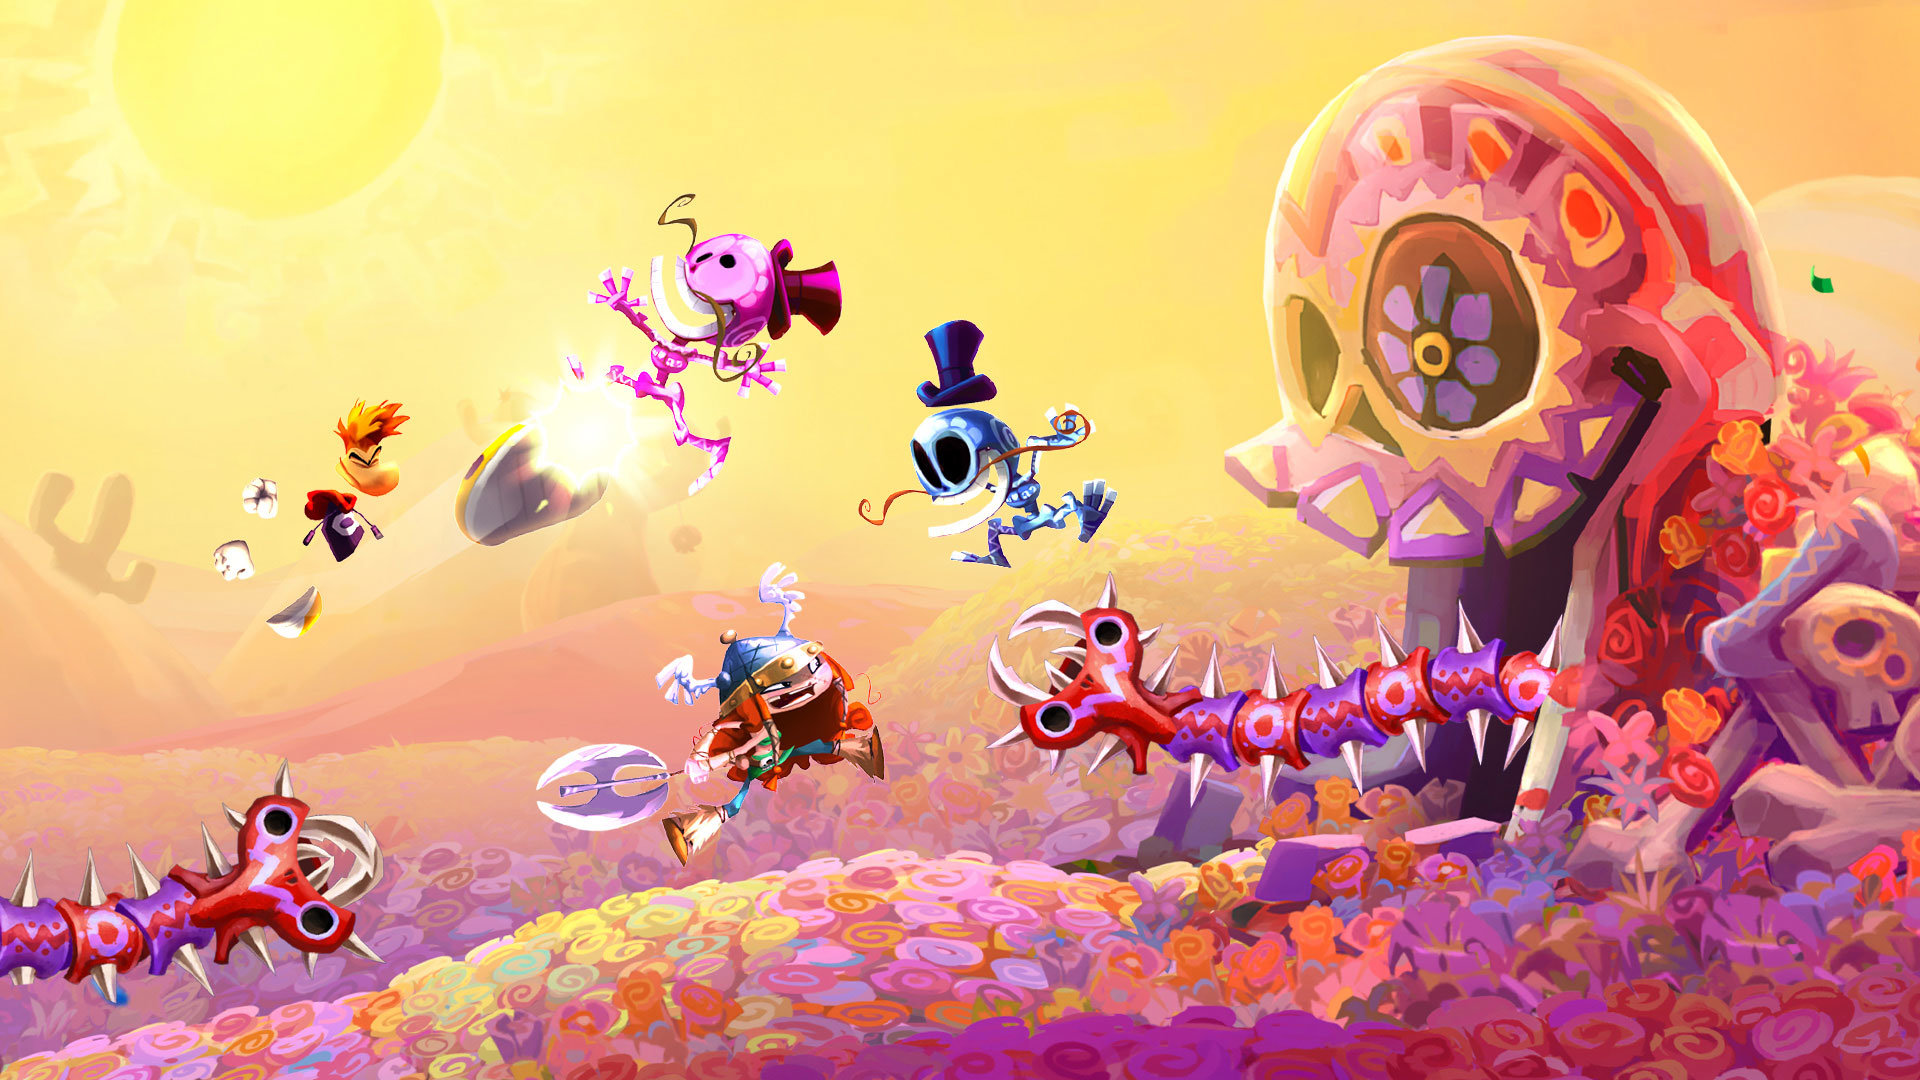 Download full hd 1920x1080 Rayman Legends computer background ID:26542 for free